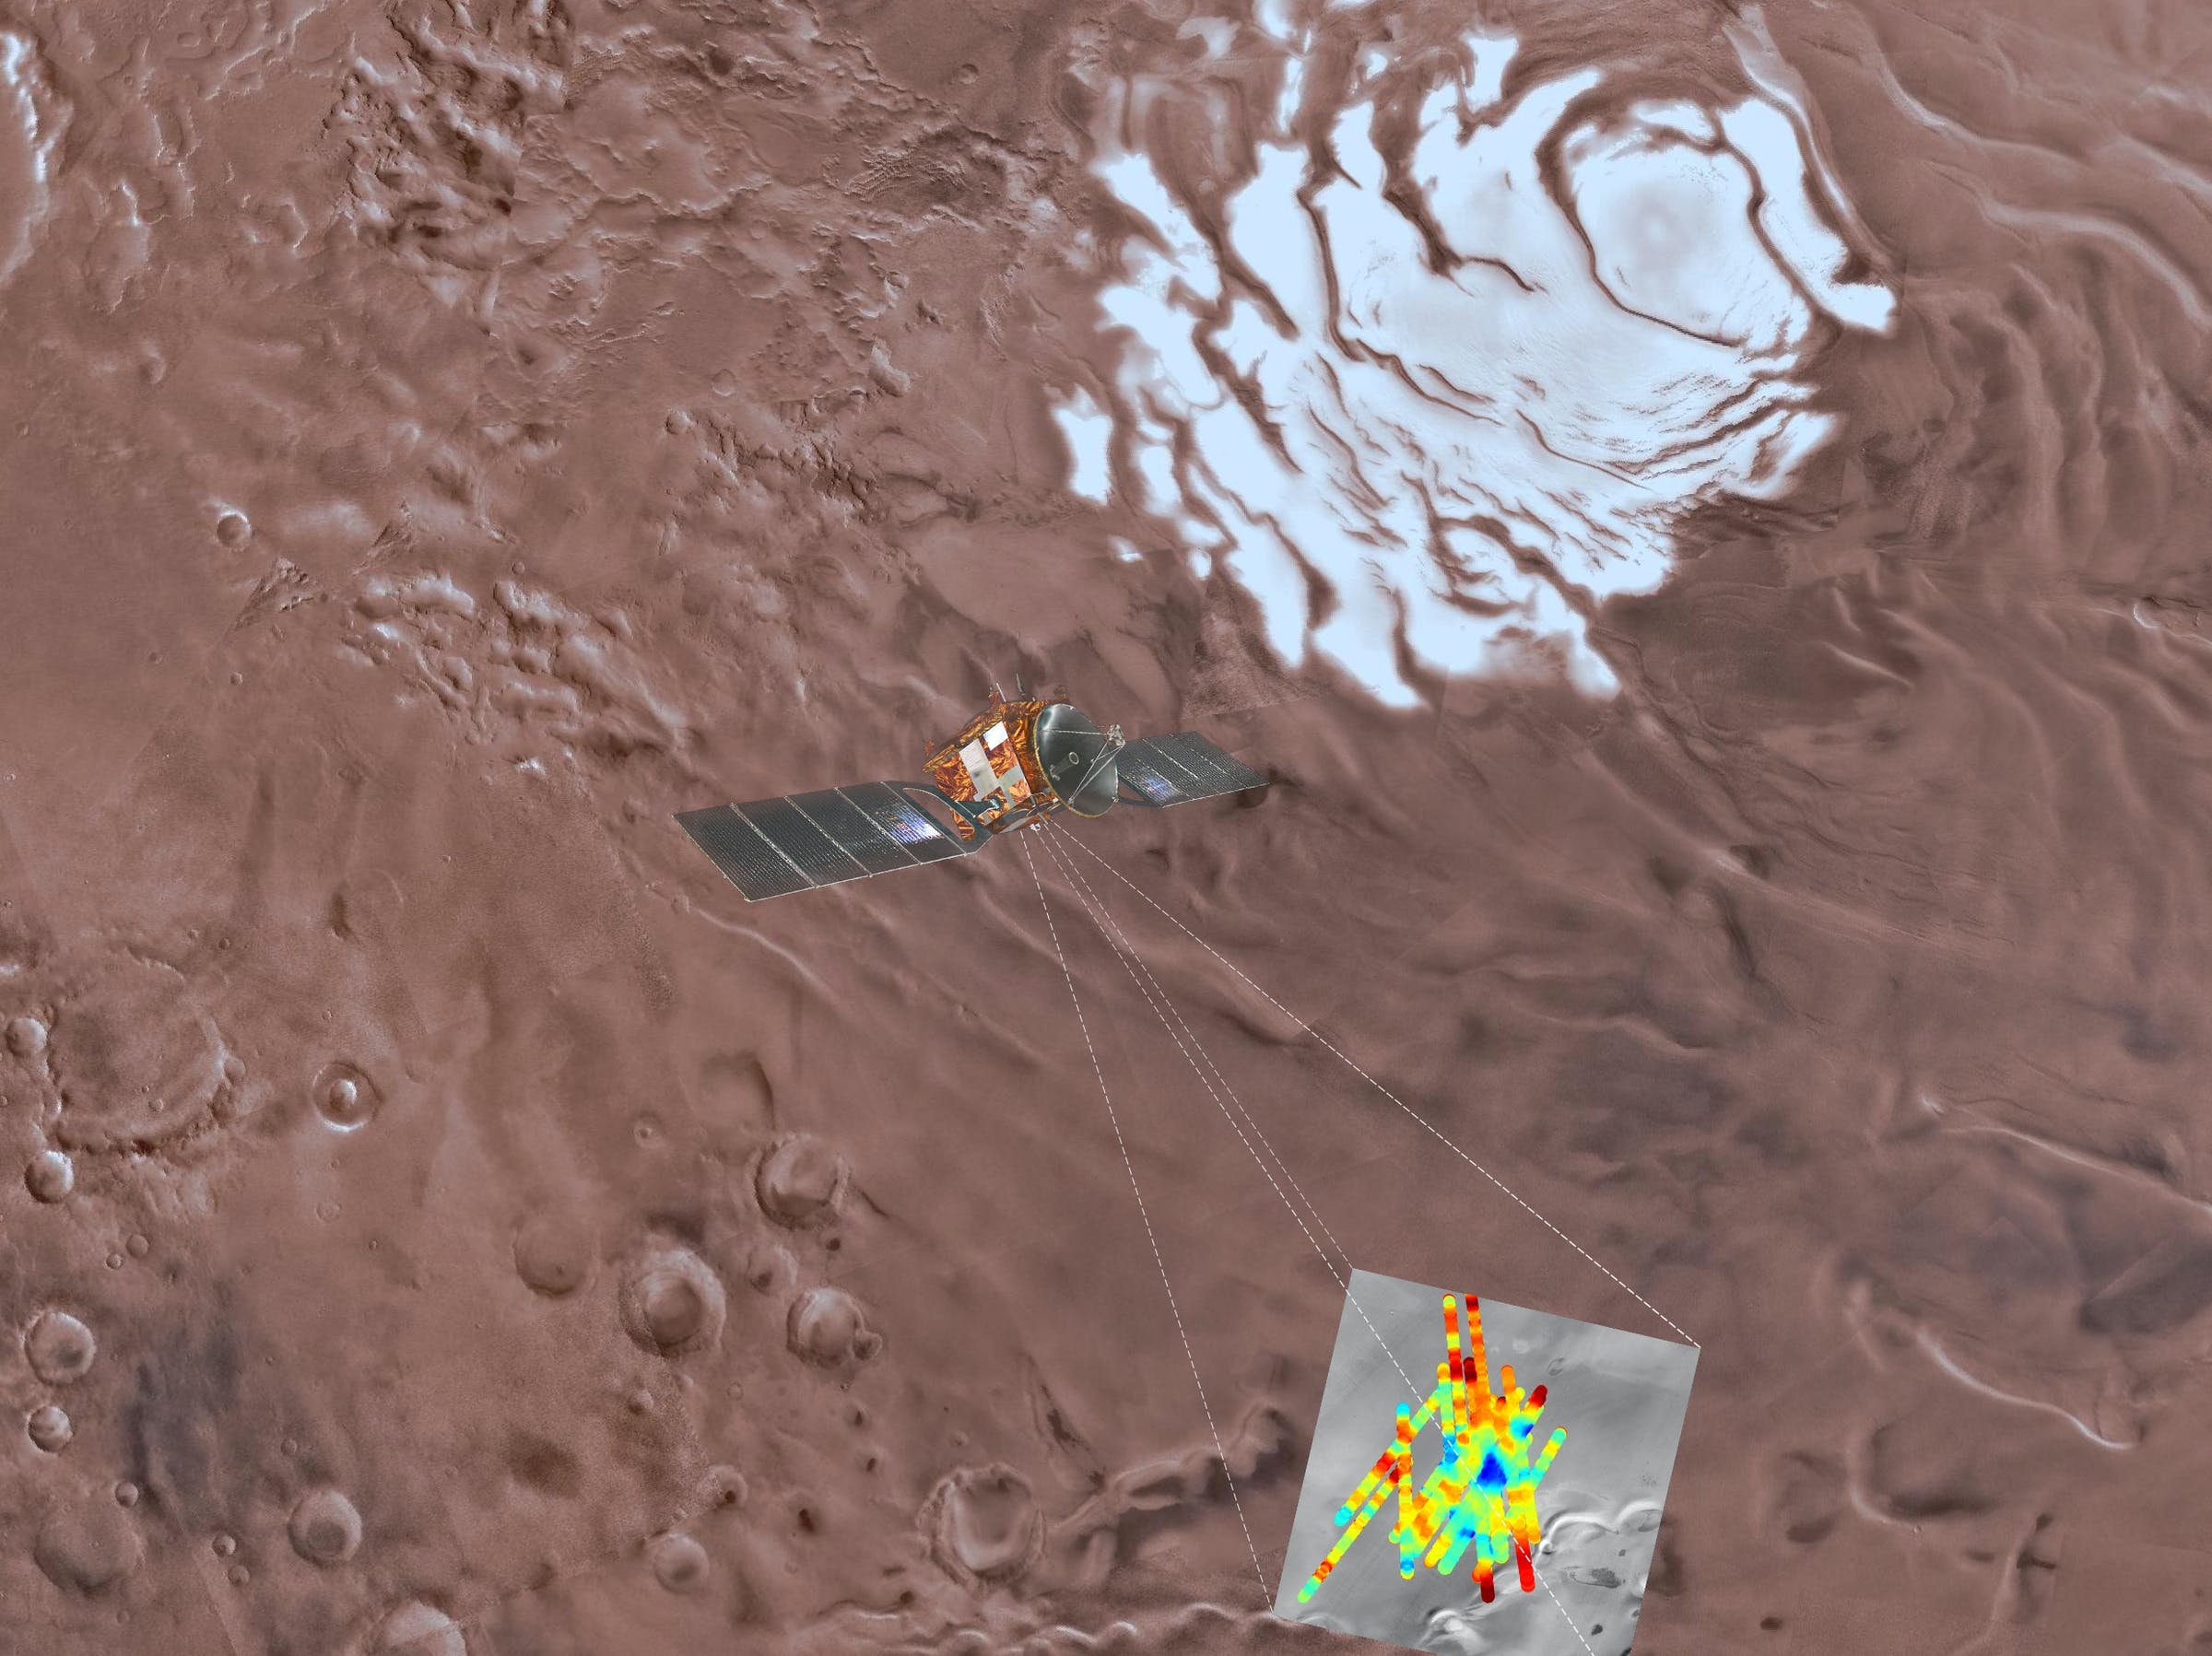 Scientists used the Mars Express spacecraft to find water below the surface of Mars.